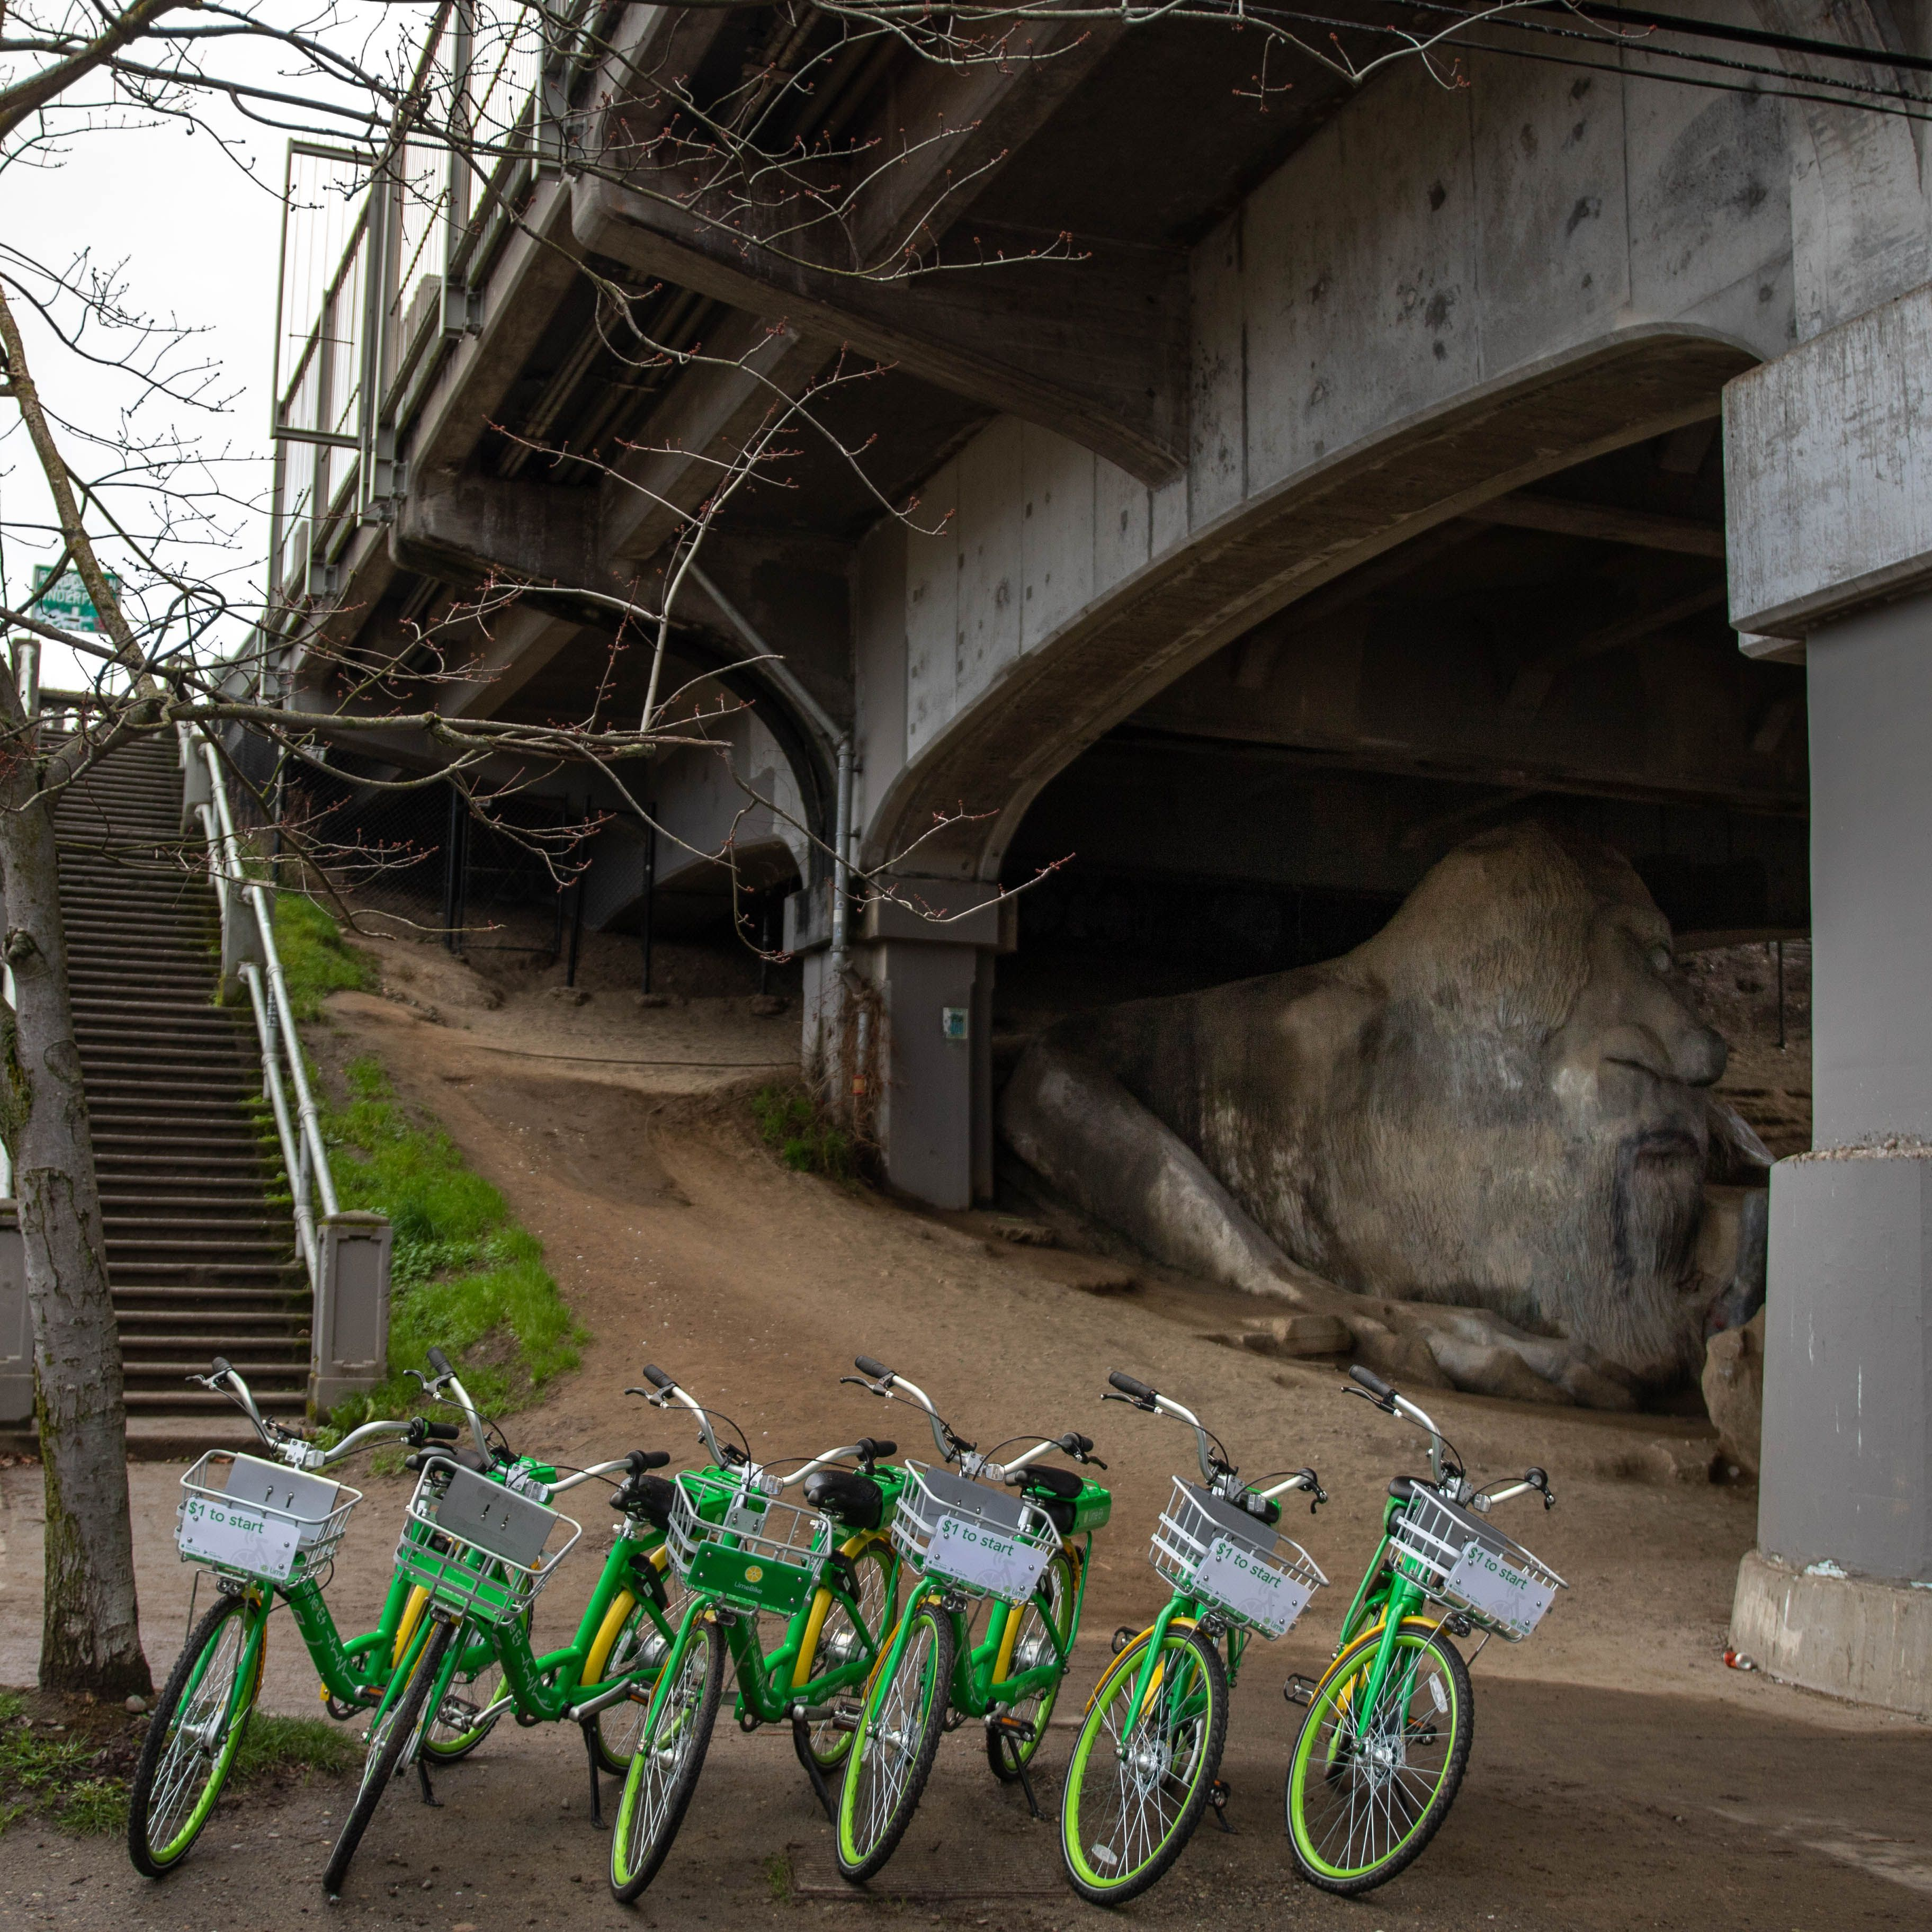 Bikes parked in front of the Troll under the bridge